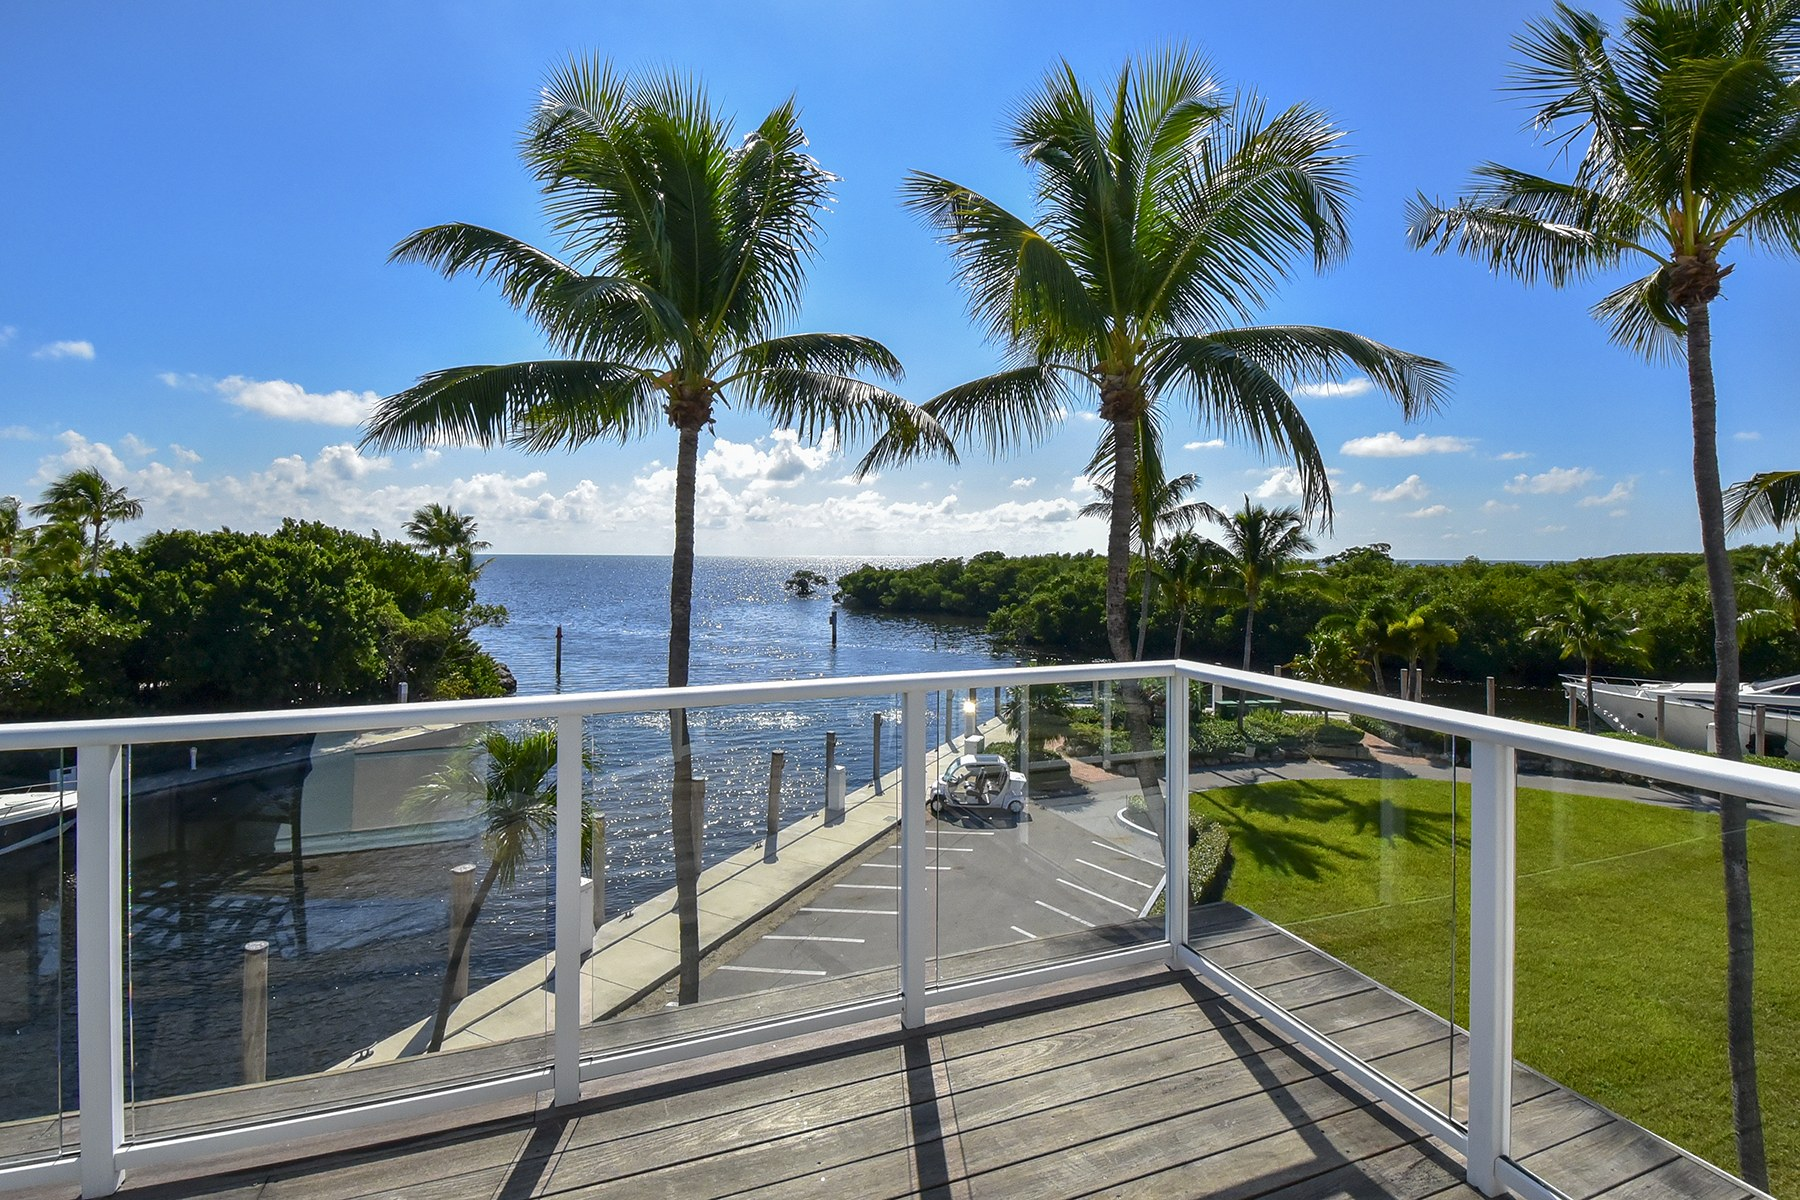 Condominiums for Sale at 35 Ocean Reef Drive, #Chairman, Key Largo, FL 35 Ocean Reef Drive, Chairman, Key Largo, Florida 33037 United States